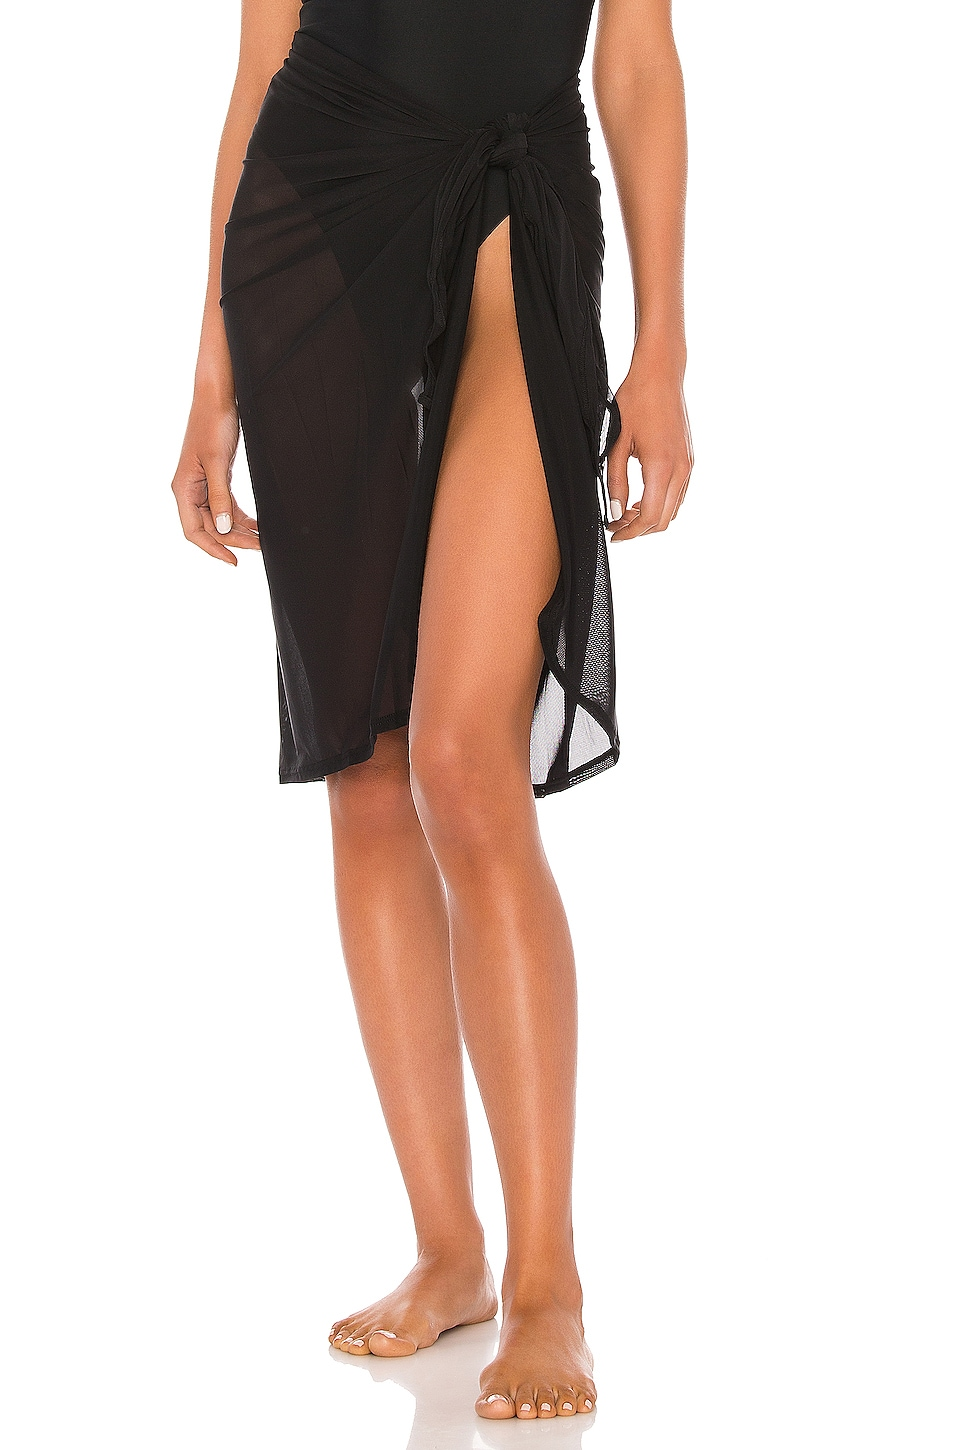 Seafolly Mid Pareo in Black